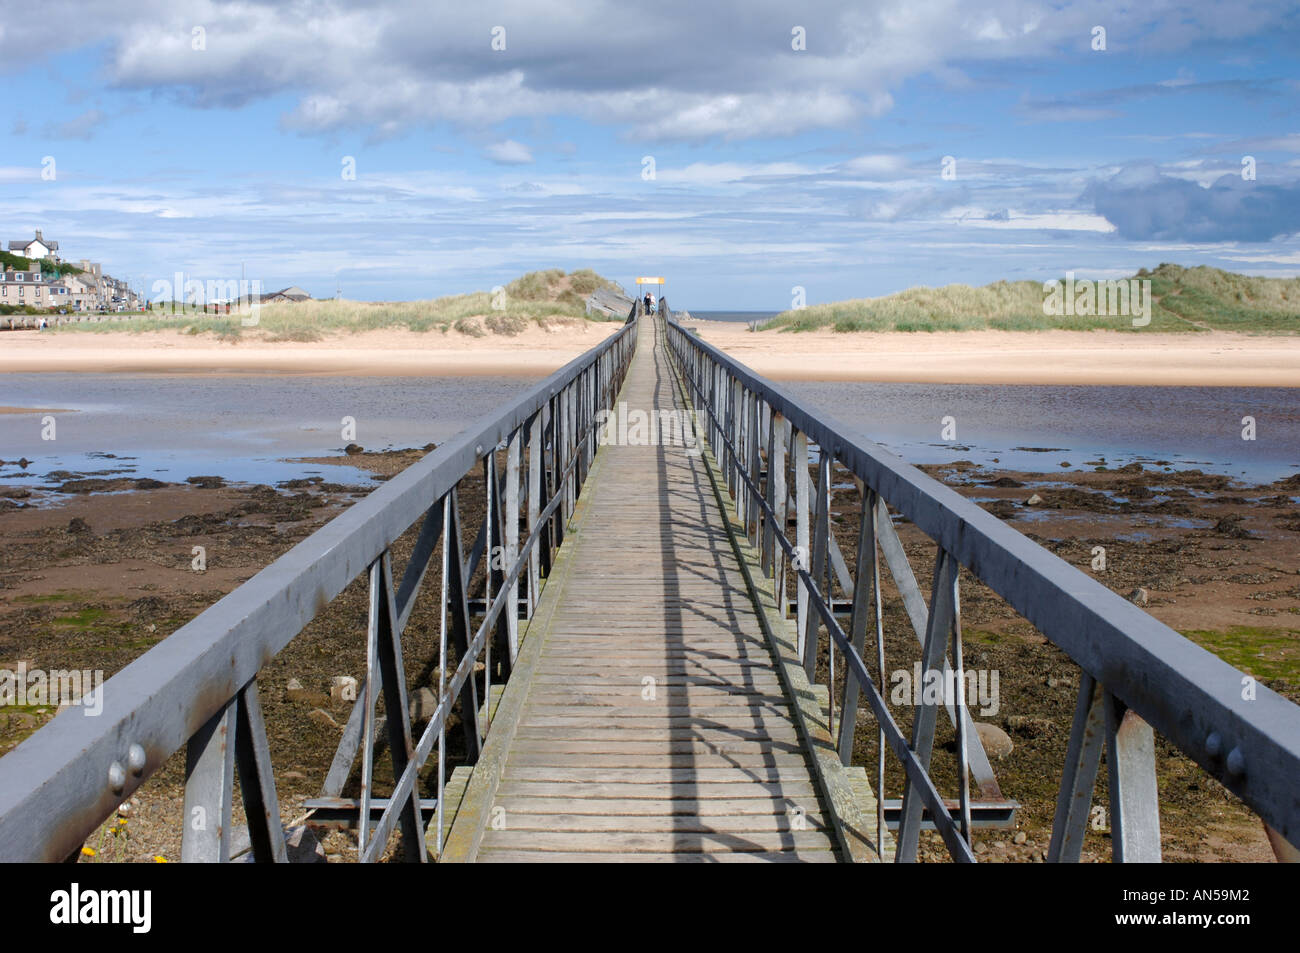 Lossiemouth, footbridge to the sandy beach and dune system Morayshire, Scotland. XPL 3231-321 - Stock Image